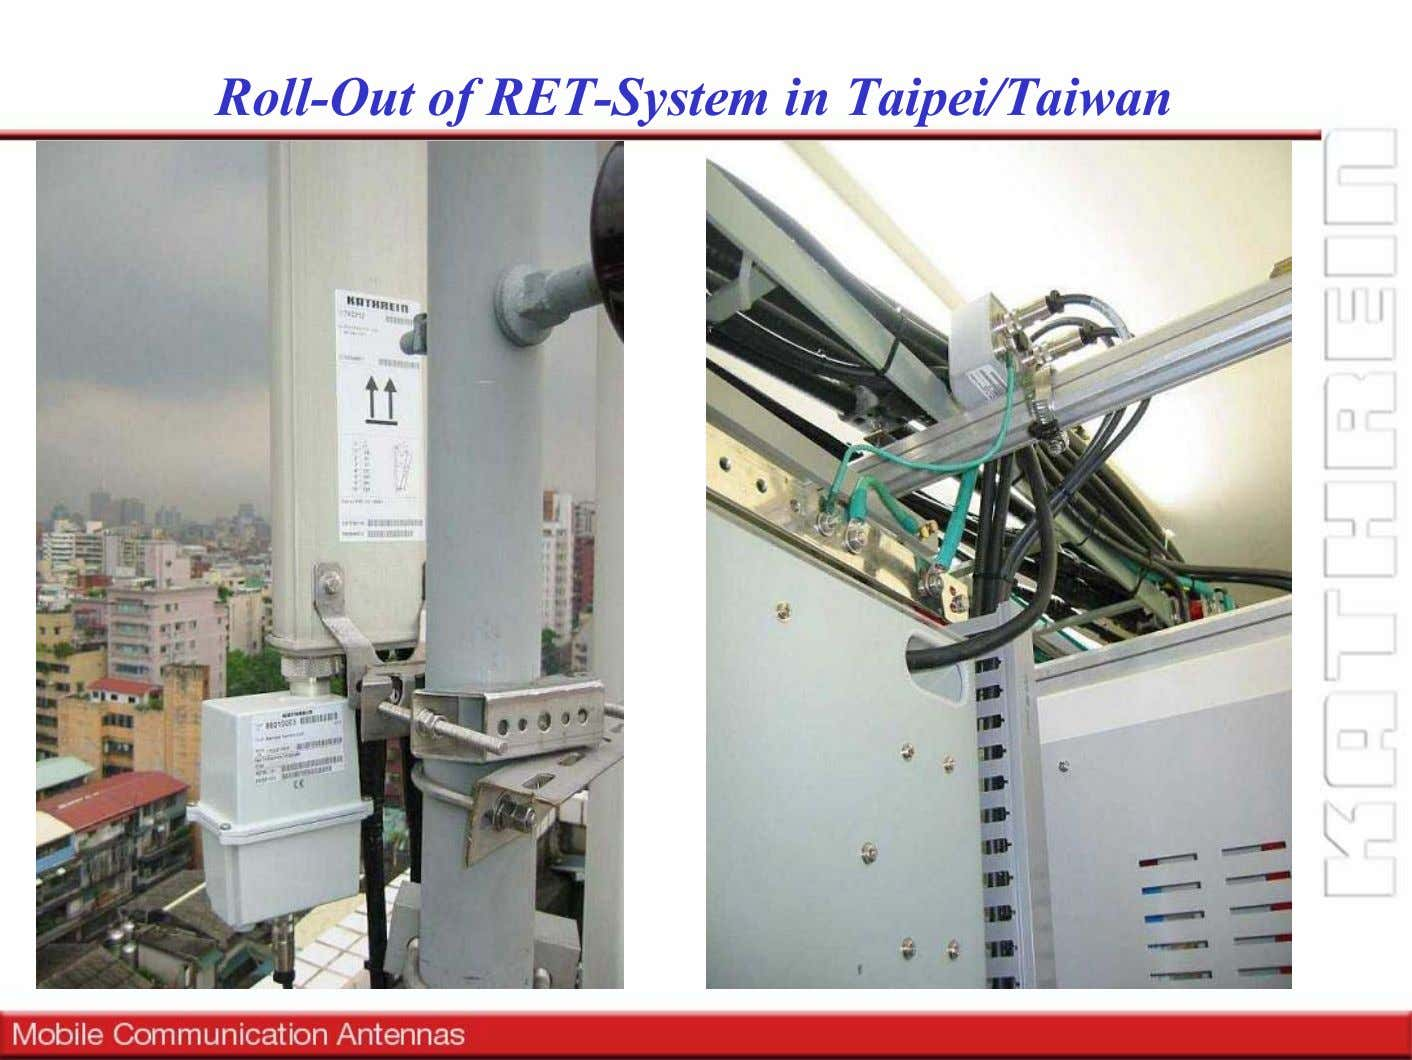 Roll-Out of RET-System in Taipei/Taiwan